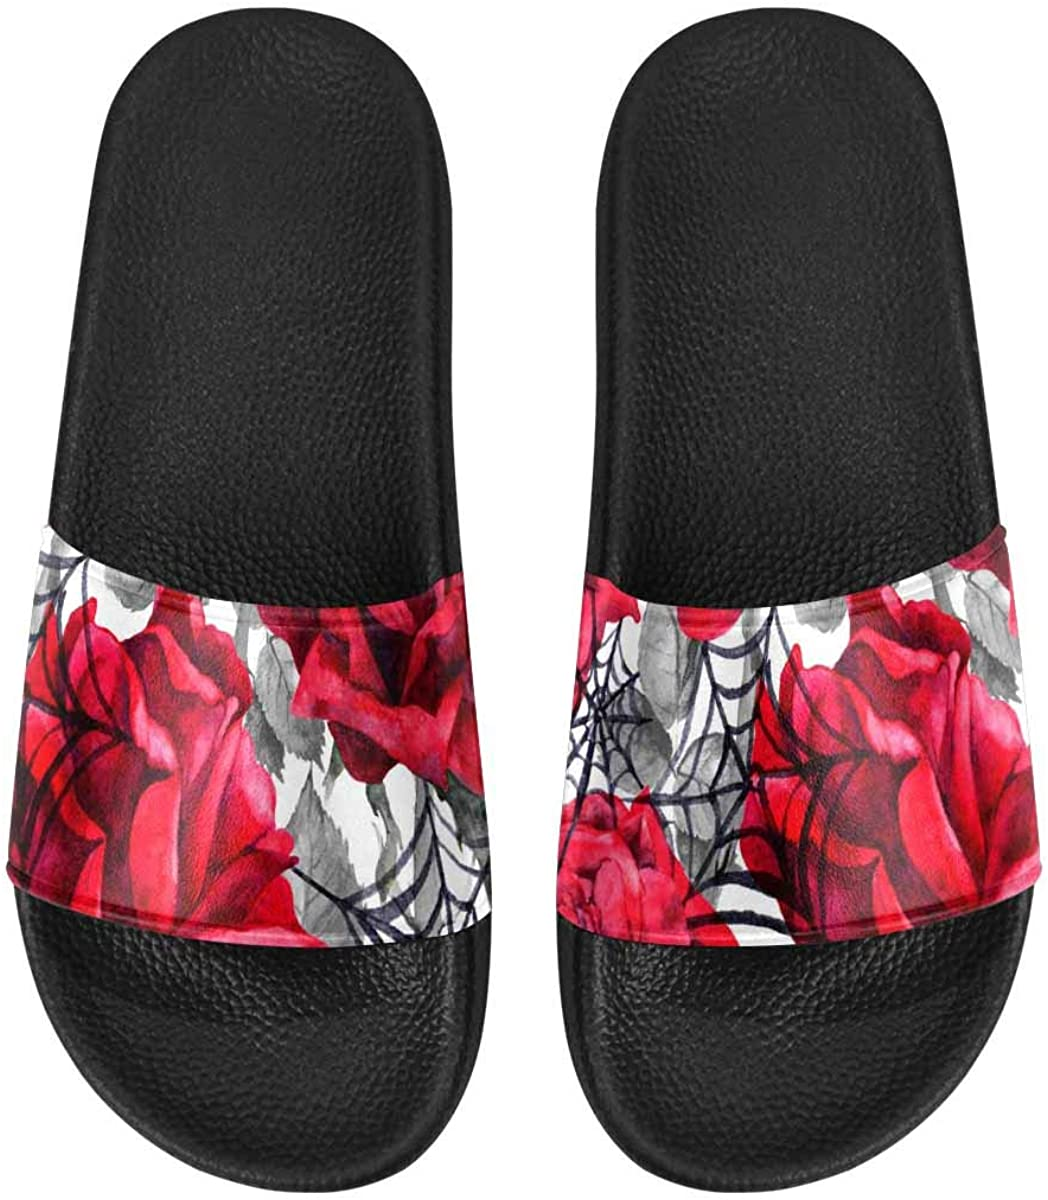 InterestPrint Women's Slide Sandals with PVC Straps and Sole Red Leopard